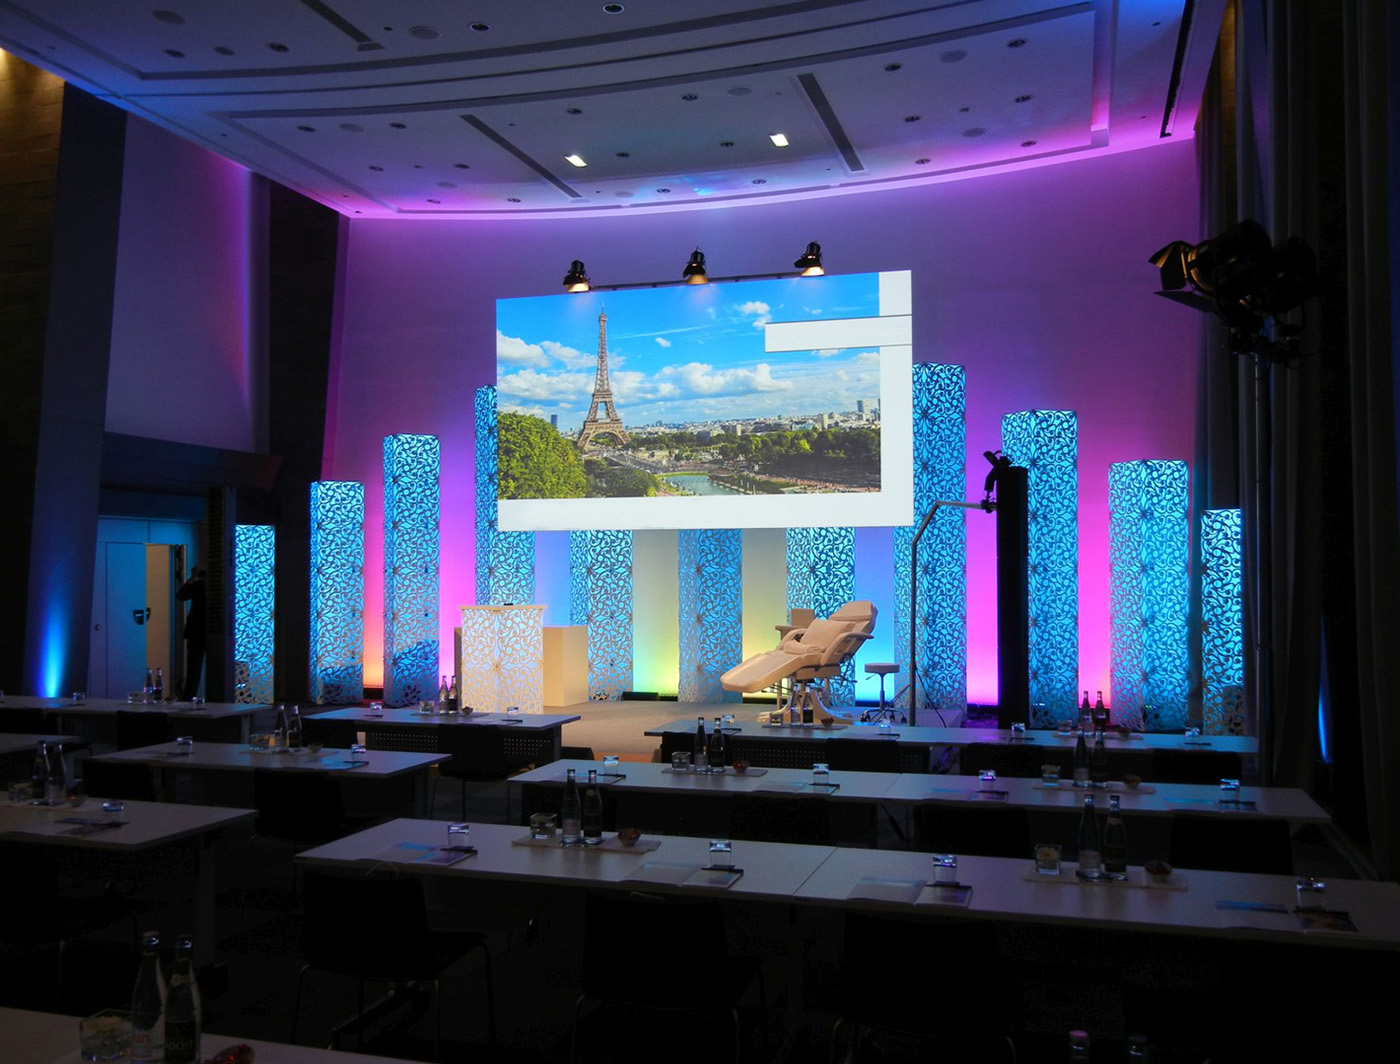 PIPPA SUPERCOLUMNS rise to the occasion at this corporate event